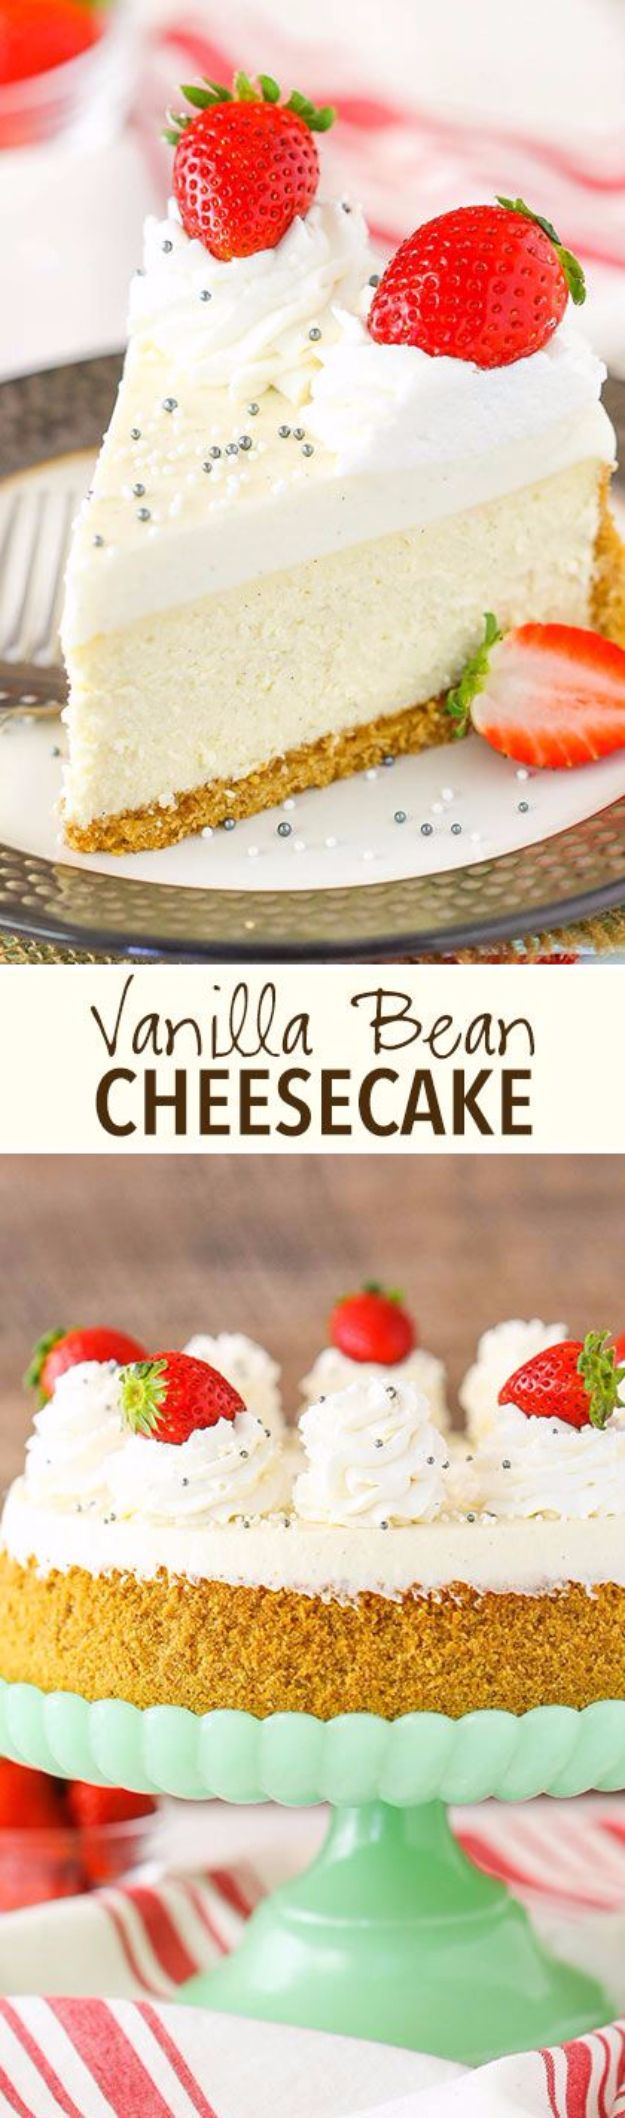 Best Cheesecake Recipes - Vanilla Bean Cheesecake - Easy and Quick Recipe Ideas for Cheesecakes and Desserts - Chocolate, Simple Plain Classic, New York, Mini, Oreo, Lemon, Raspberry and Quick No Bake - Step by Step Instructions and Tutorials for Yummy Dessert